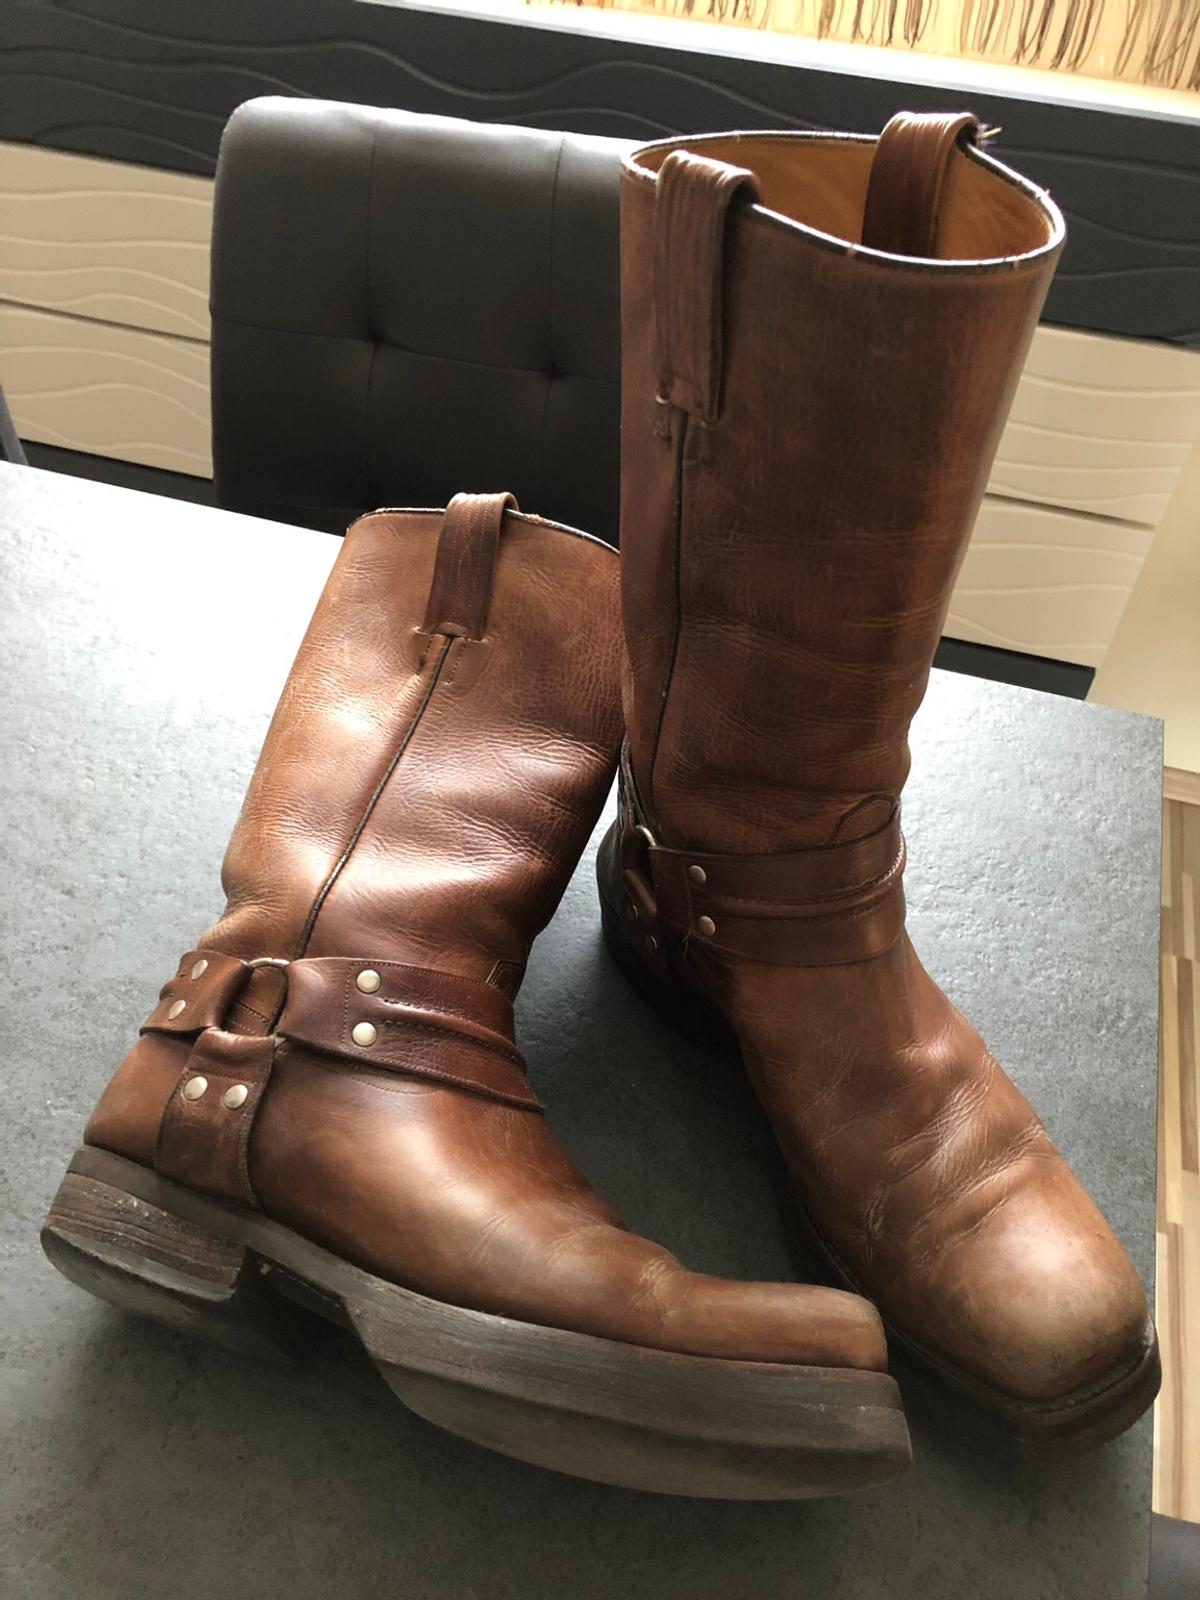 Stiefel Western Boots Gr. 43 in 1220 Donaustadt for </p>                     </div> </div>          <!-- tab-area-end --> </div> <!--bof also purchased products module-->  <!--eof also purchased products module--> <!--bof also related products module--> <!--eof also related products module--> <!--bof Prev/Next bottom position -->         <!--eof Prev/Next bottom position --> <!--bof Form close--> </form> <!--bof Form close--> </div> <div style=